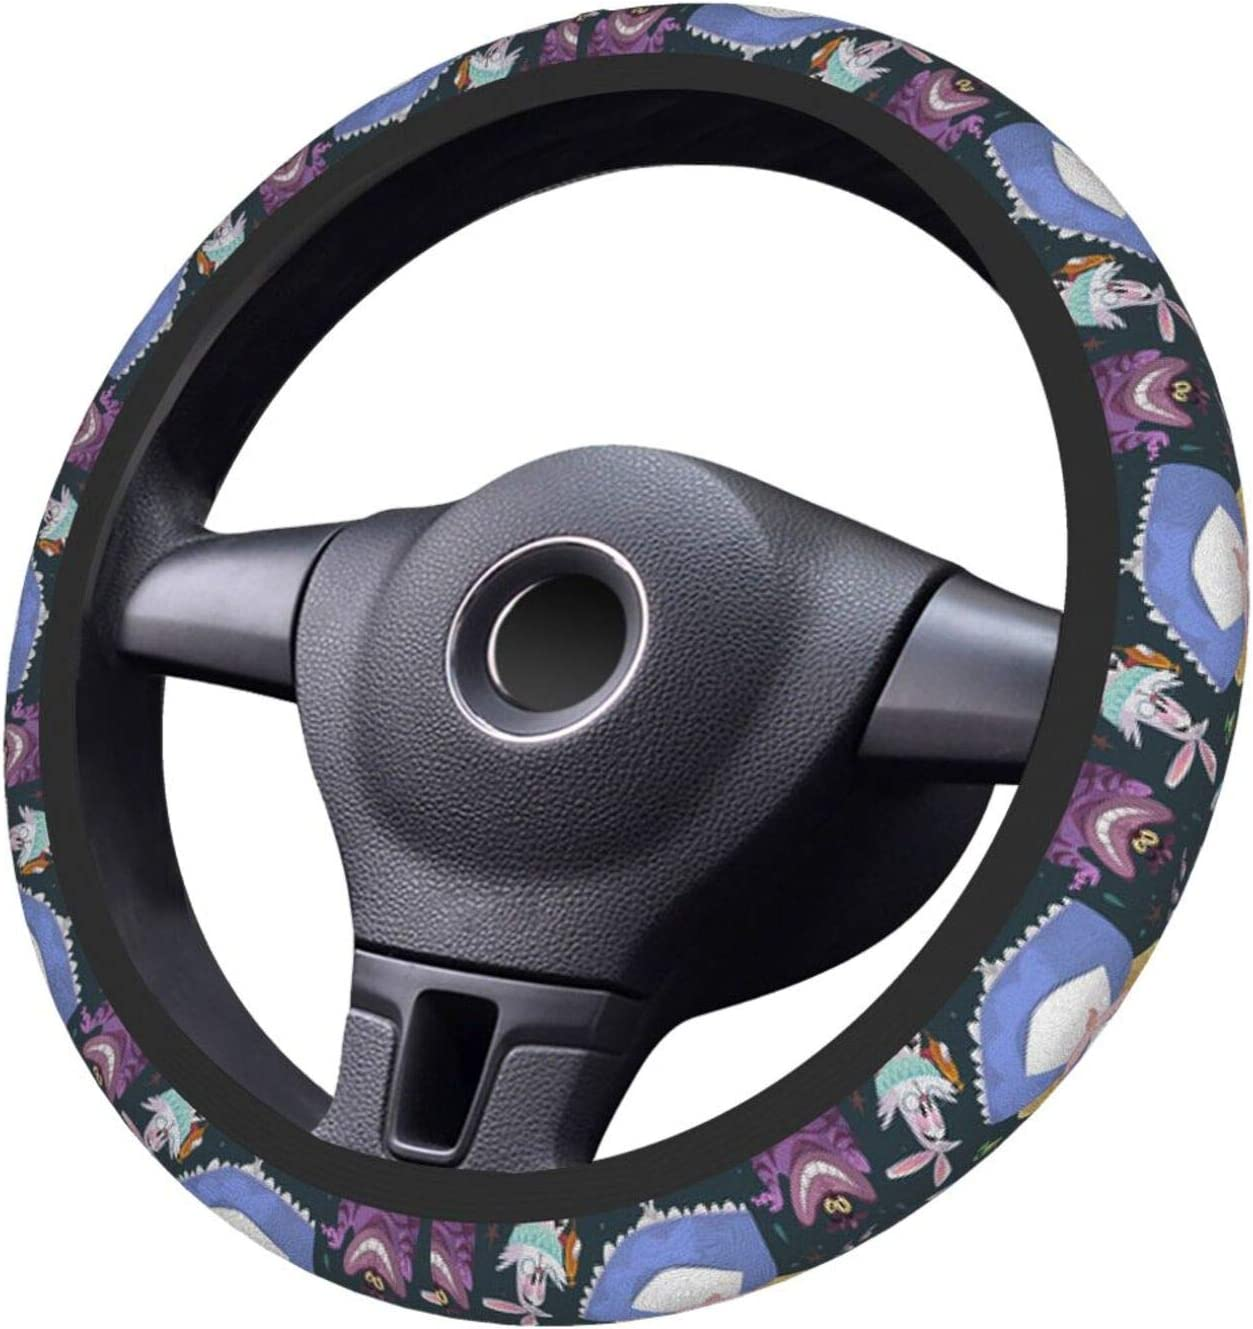 UHBBT Cheshire Cat Streering Wheel Cover Universal Fit 15 Inch Elasticity Auto Car Wheel Protector for Men Women